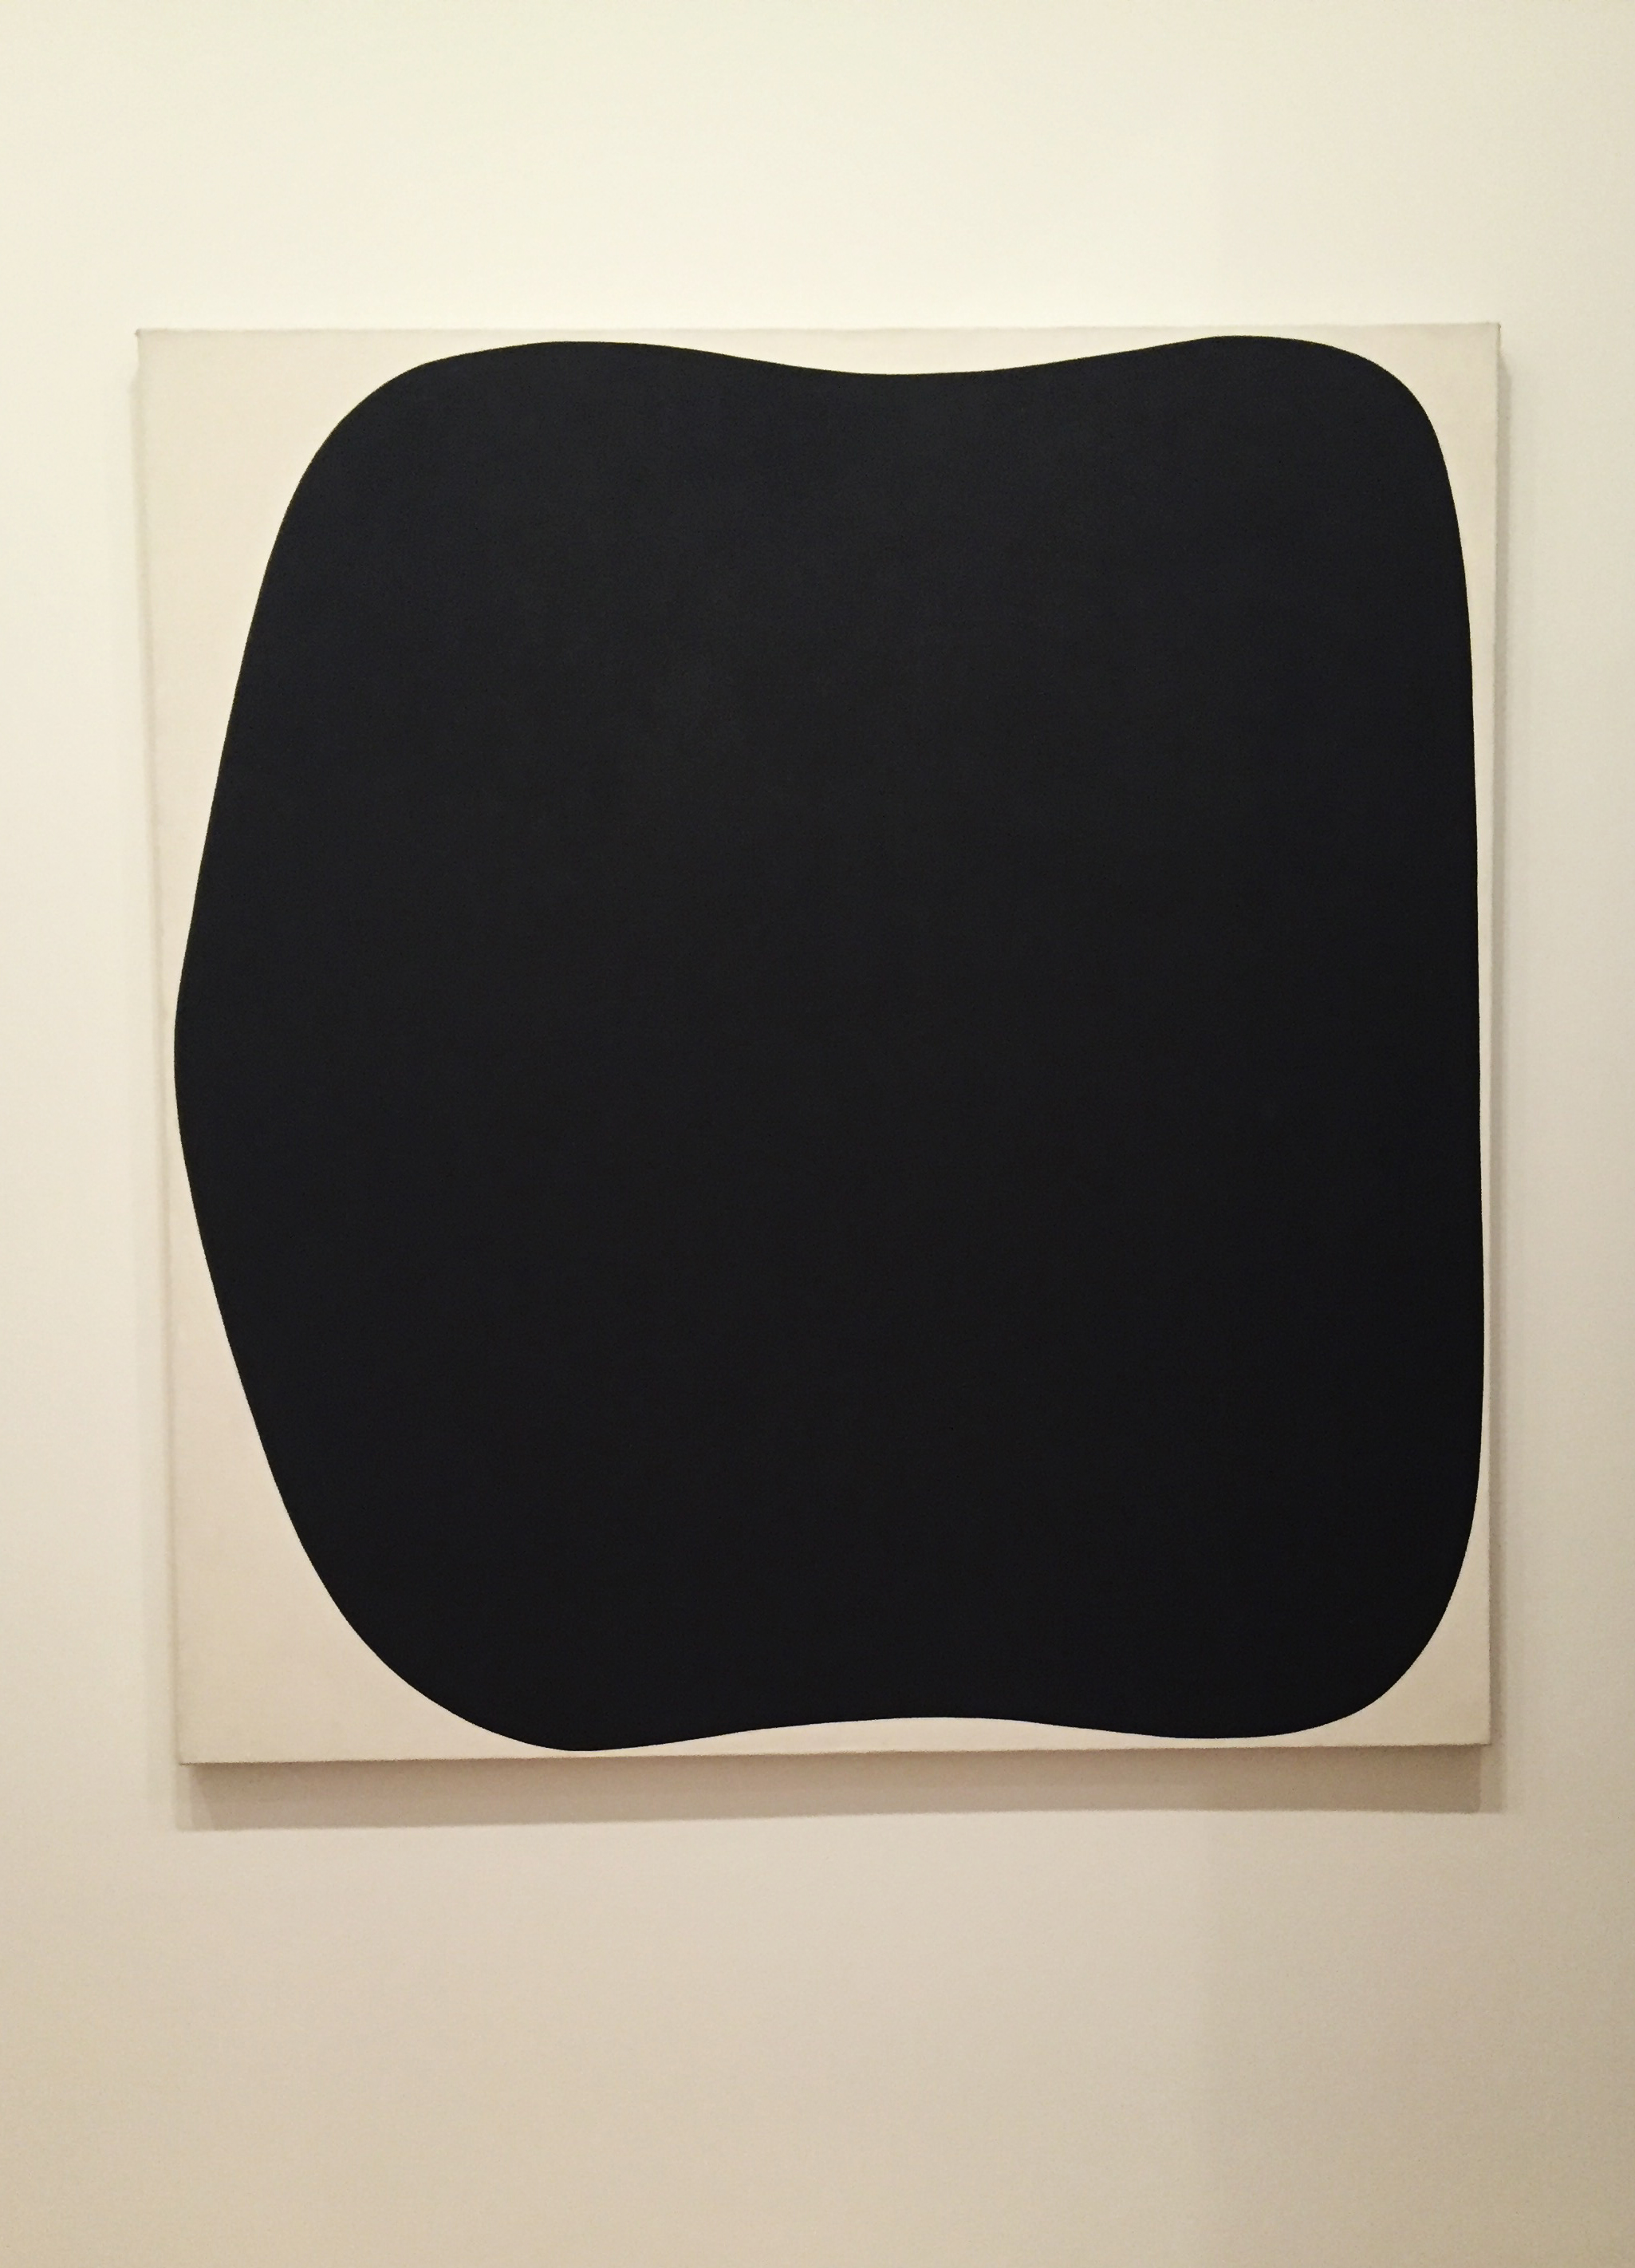 """Ellsworth Kelly (American, 1923) wanted us to see form and relationships when looking at his work. He named this work, """"Black Ripe"""" (1955, oil on canvas), after visiting the studio of his buddy, Alexander Calder."""